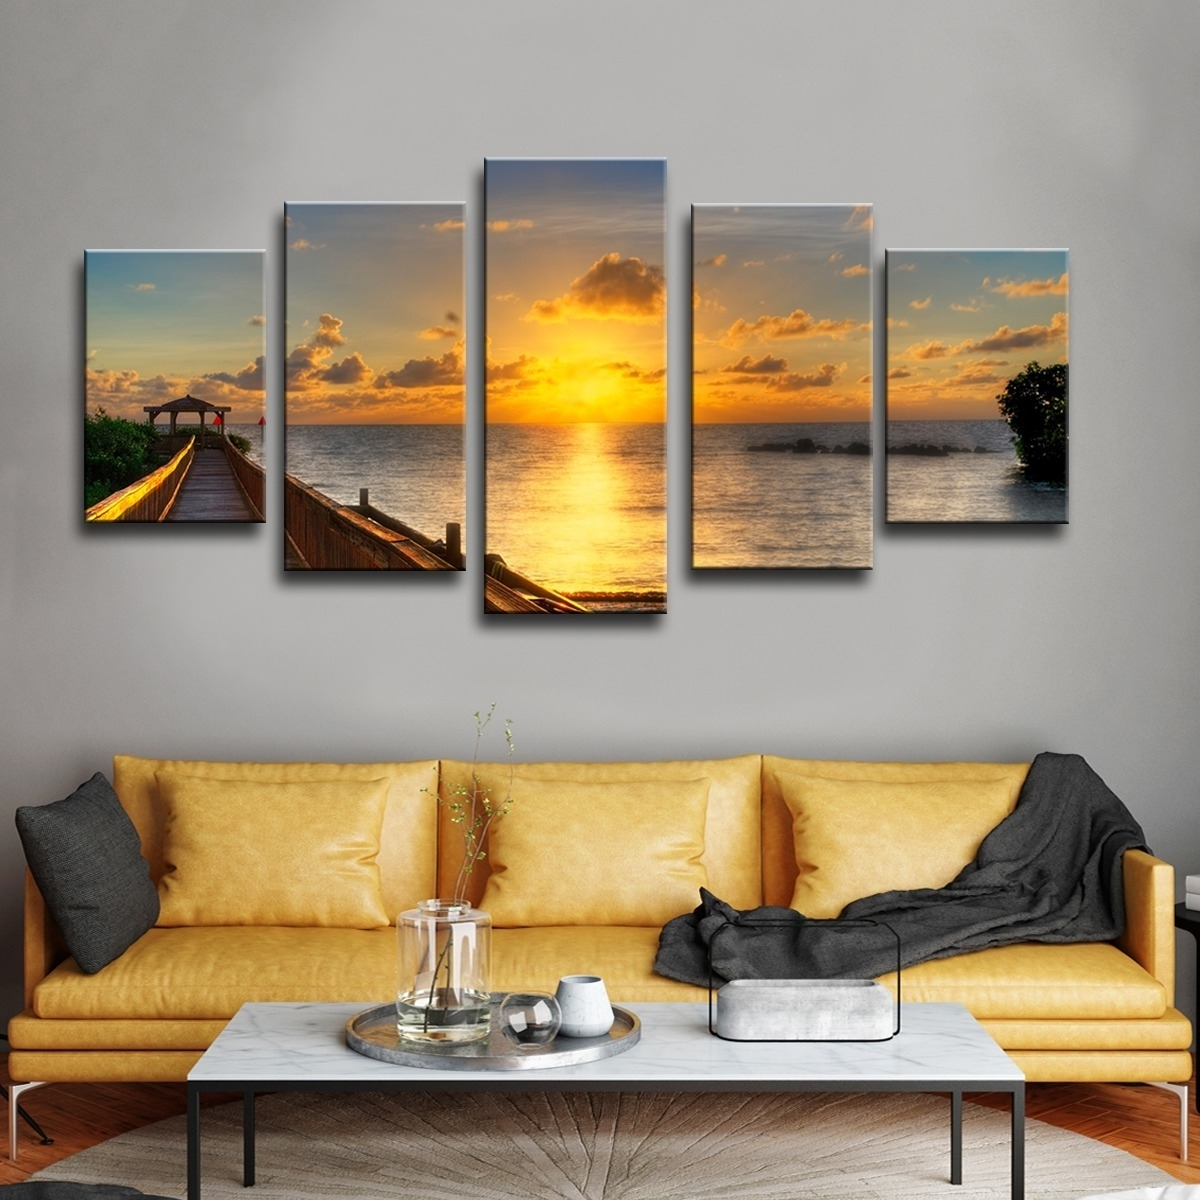 Shop Havenside Home Key's Sunrise' 5 Piece Set Canvas Wall Art For Famous Overstock Wall Art (View 16 of 20)